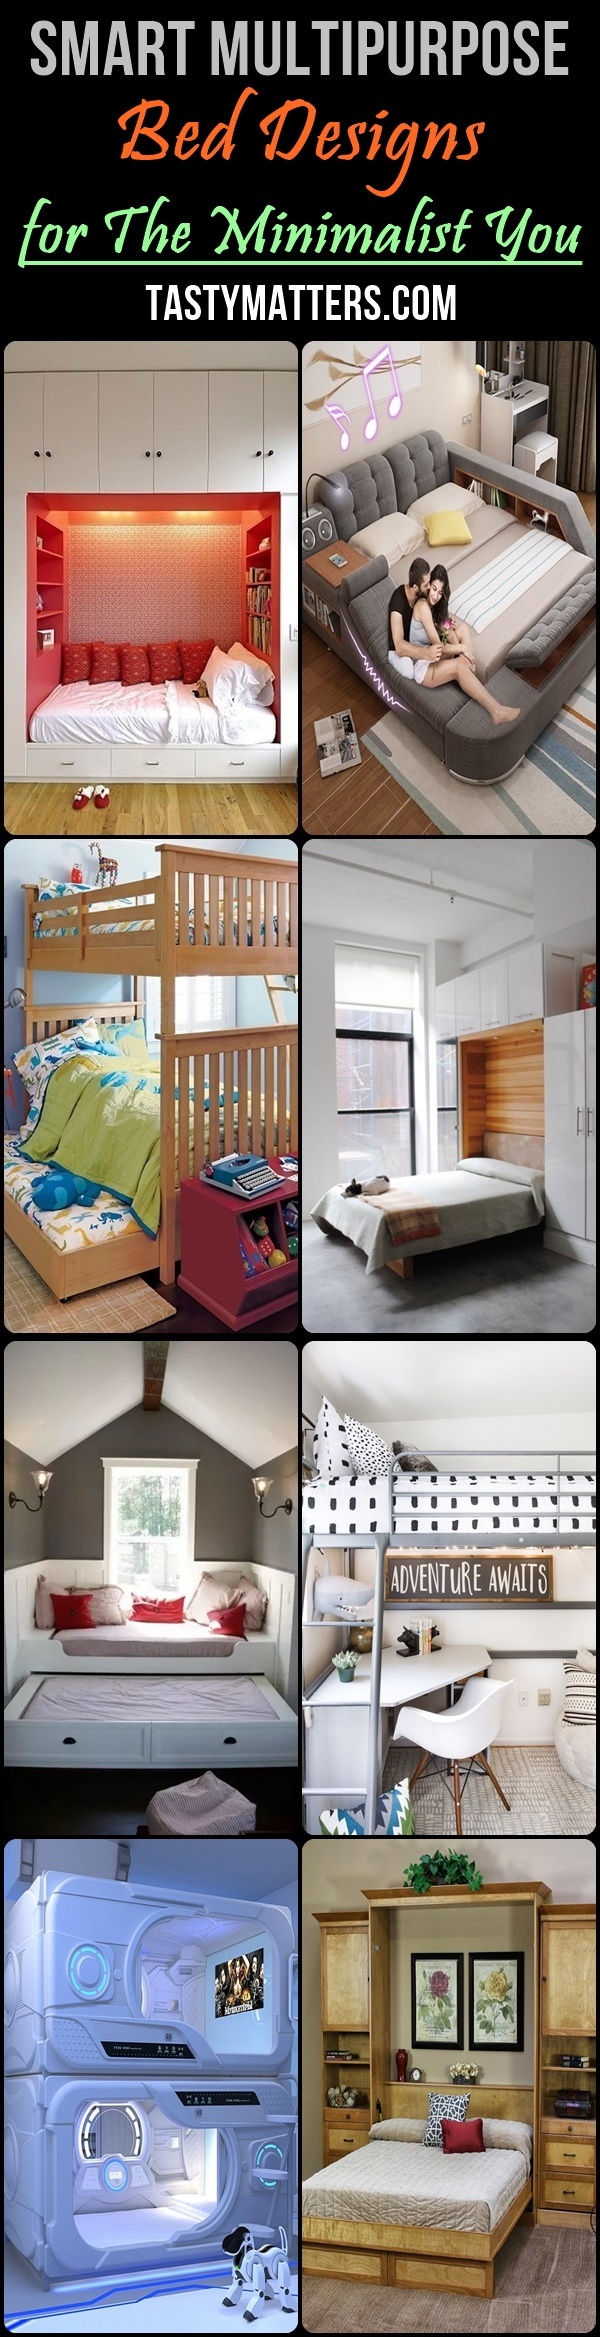 Smart Multipurpose Bed Designs for The Minimalist You